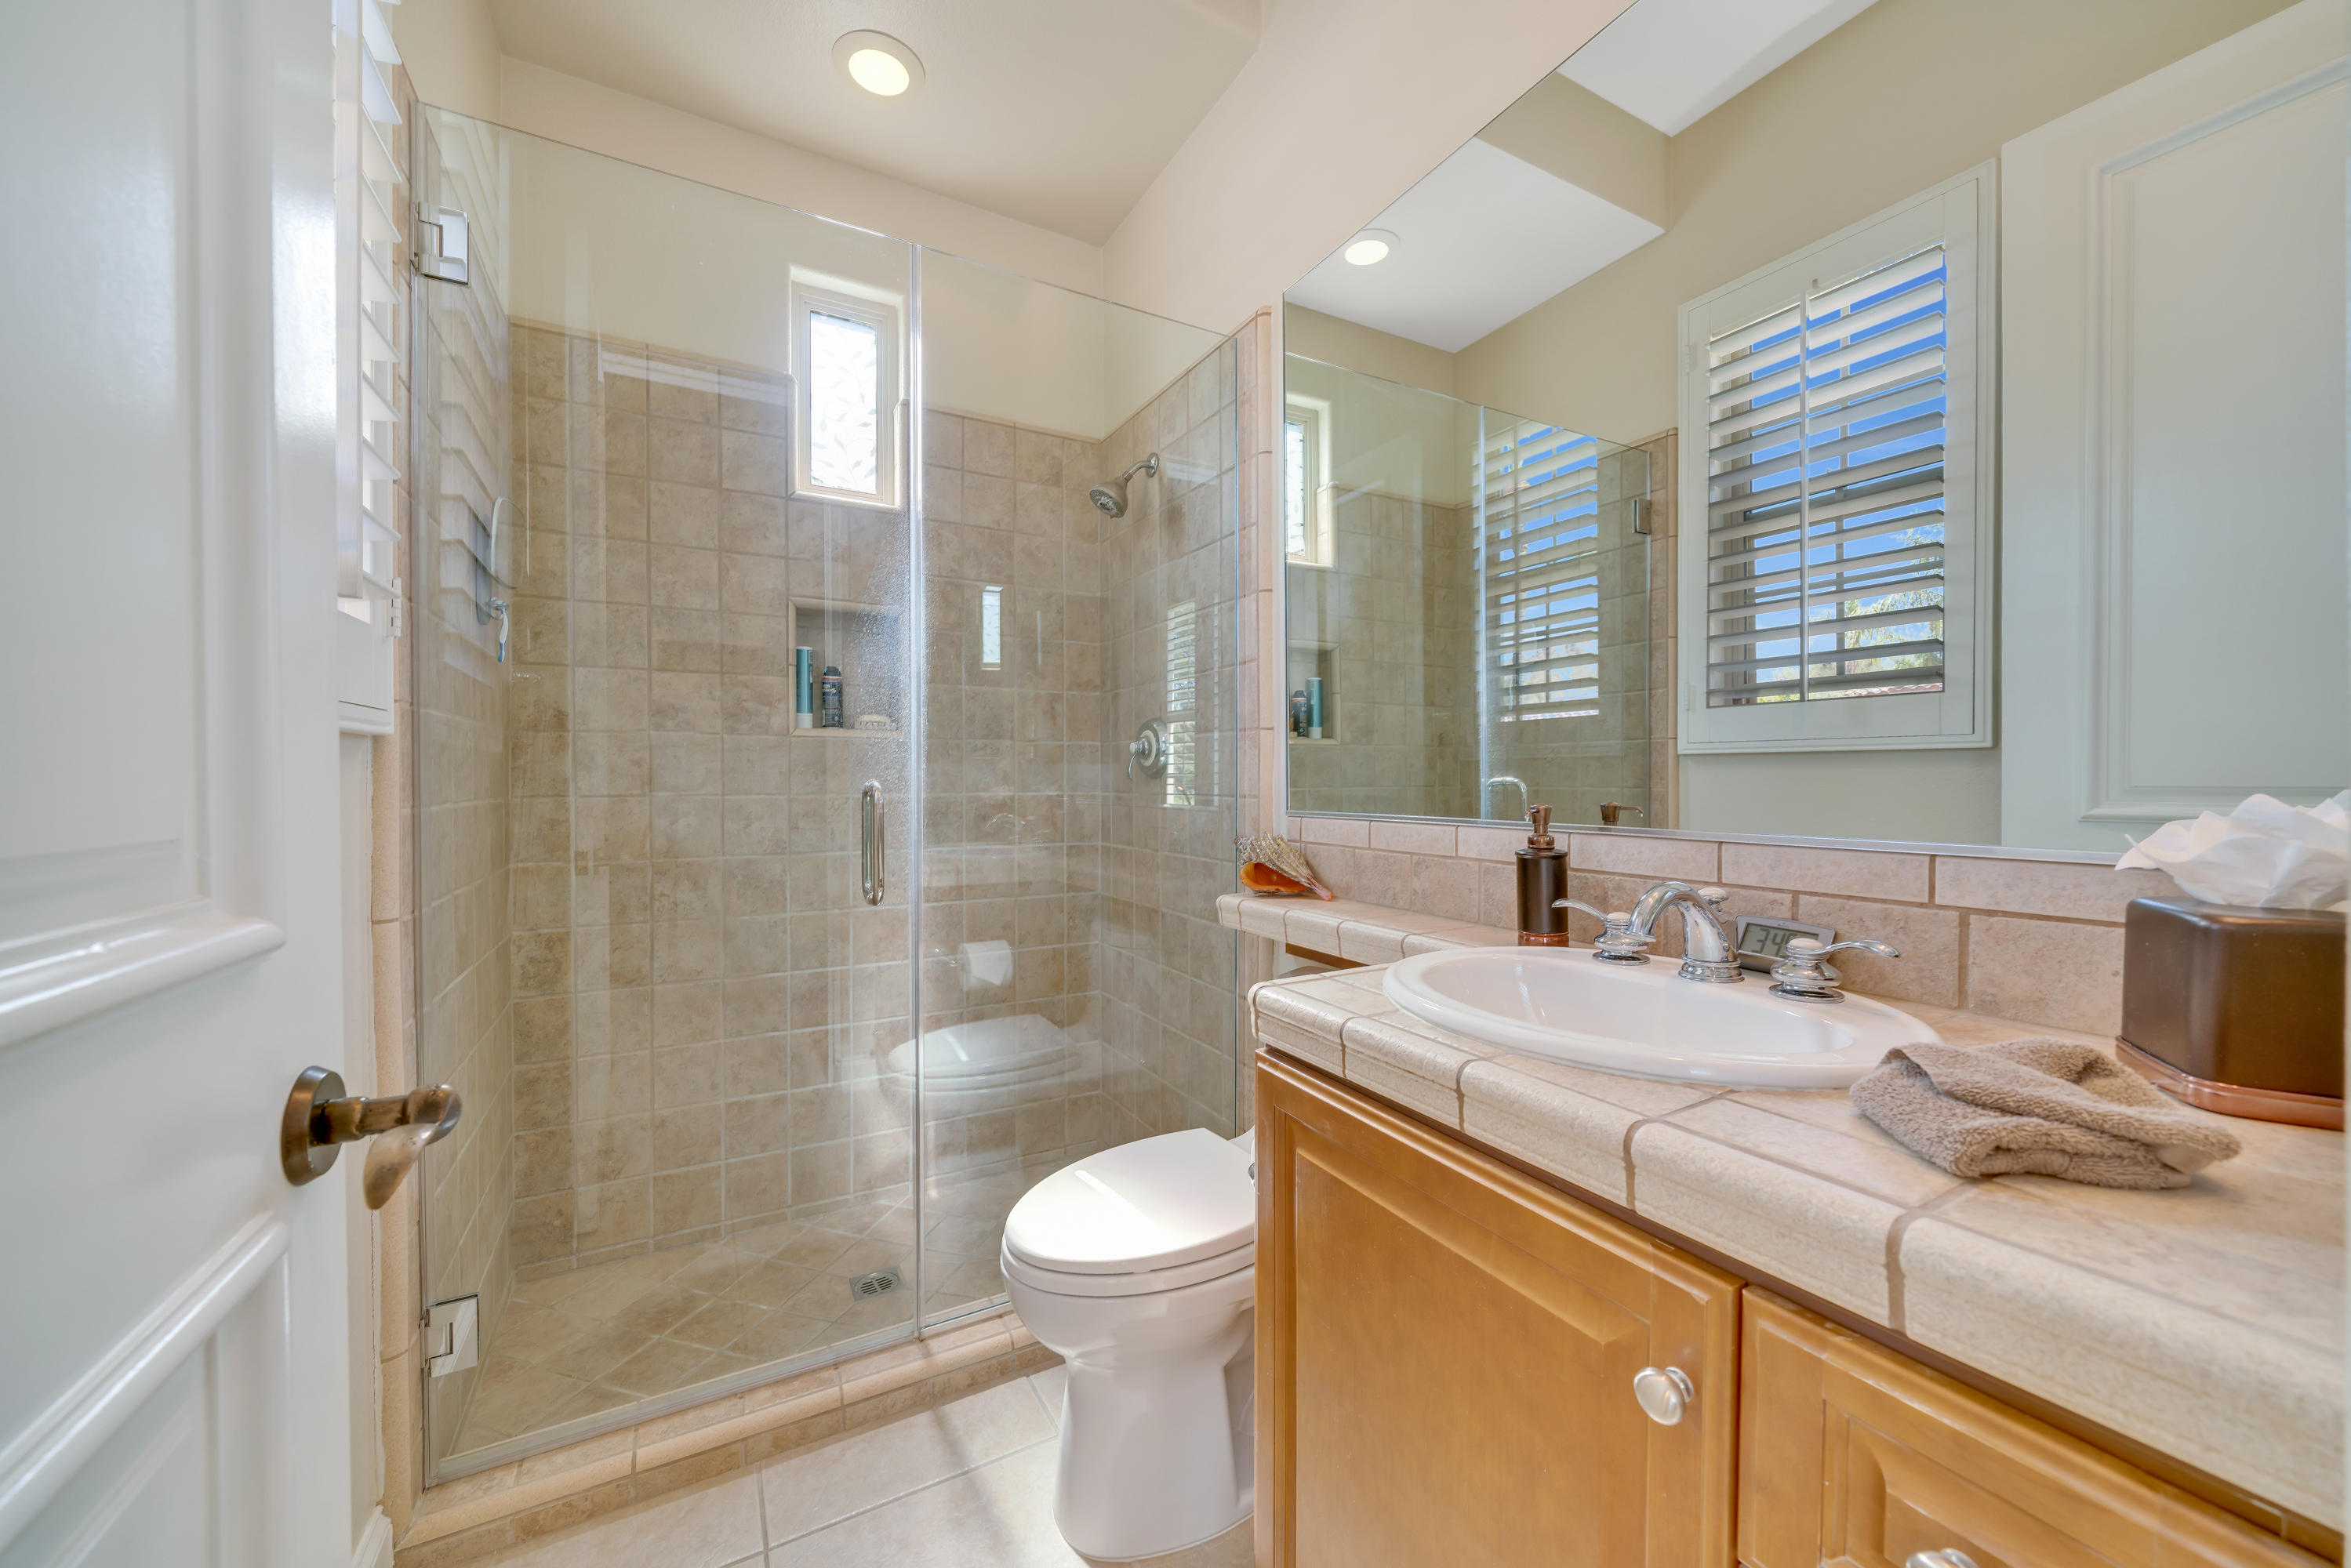 76214 Via Montelena, Indian Wells, California 92210, 3 Bedrooms Bedrooms, ,4 BathroomsBathrooms,Residential,For Sale,76214 Via Montelena,219045594